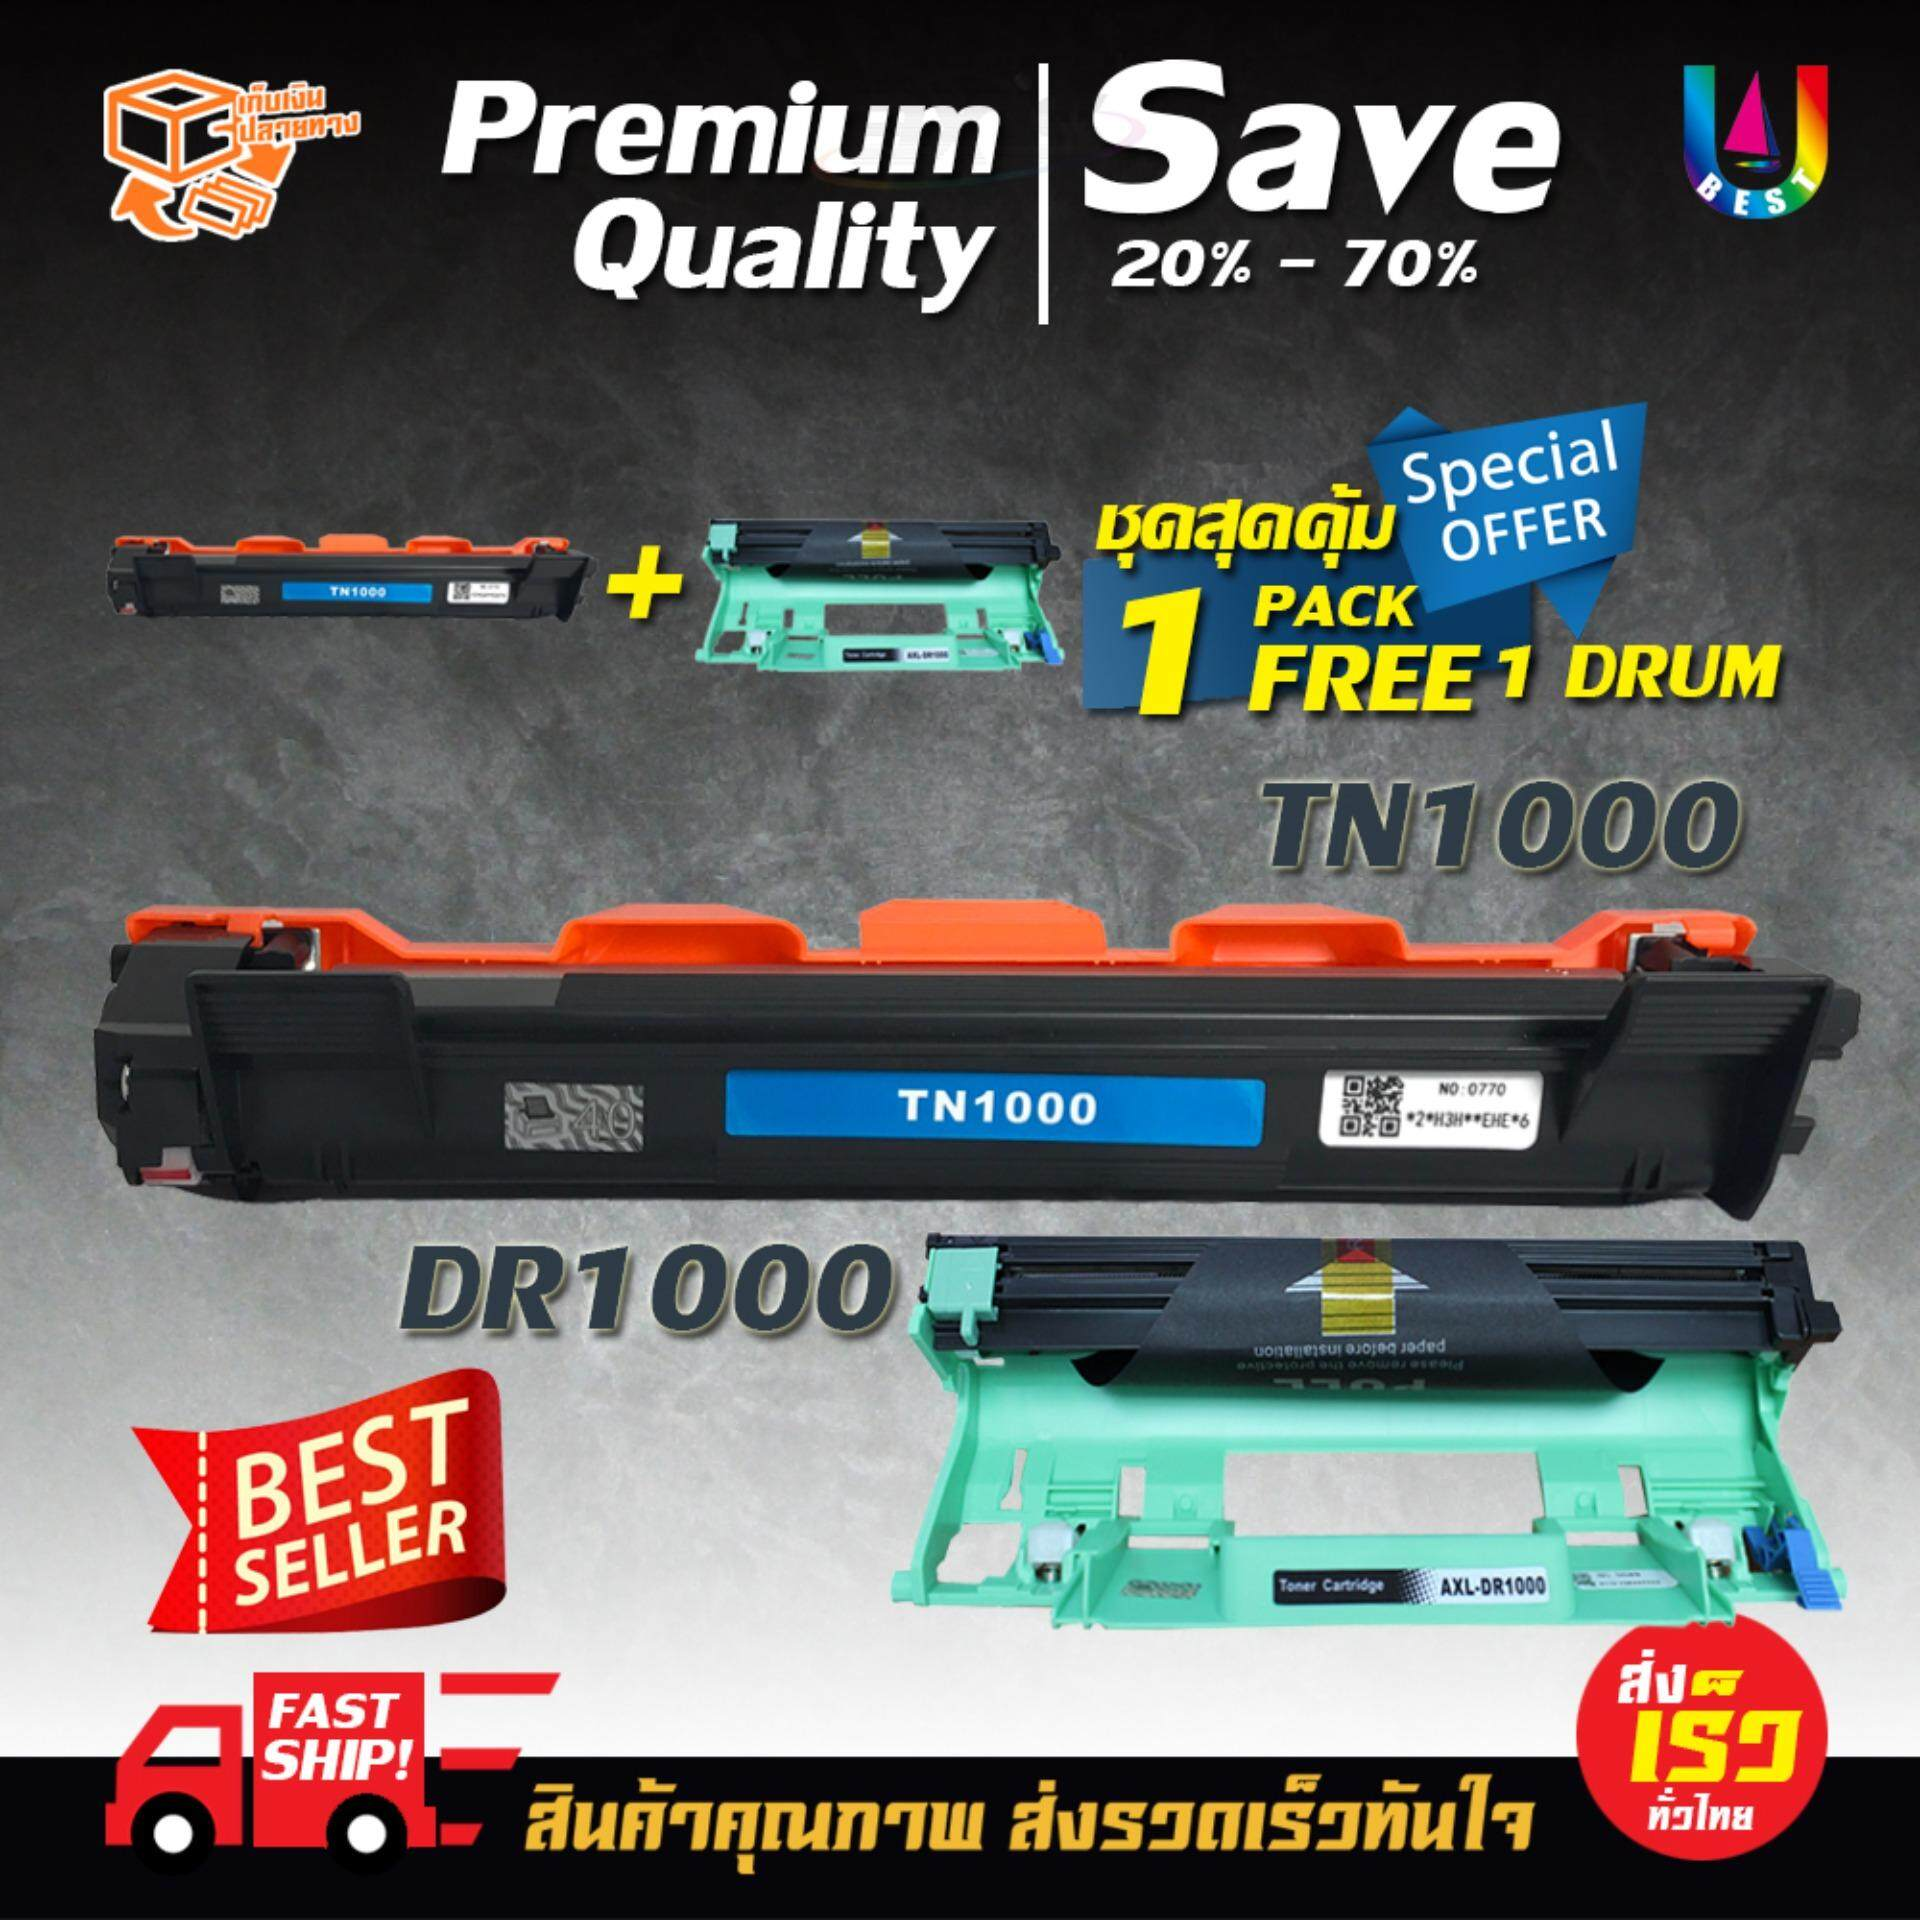 ราคา Brother Axis Brother 1000 Tn 1000 Tn1000 1000 Dr 1000 Dr1000 For For Printer Brother Hl 1110 1210W Dcp 1510 1610W Mfc 1810 1815 1910W Best4U ออนไลน์ กรุงเทพมหานคร